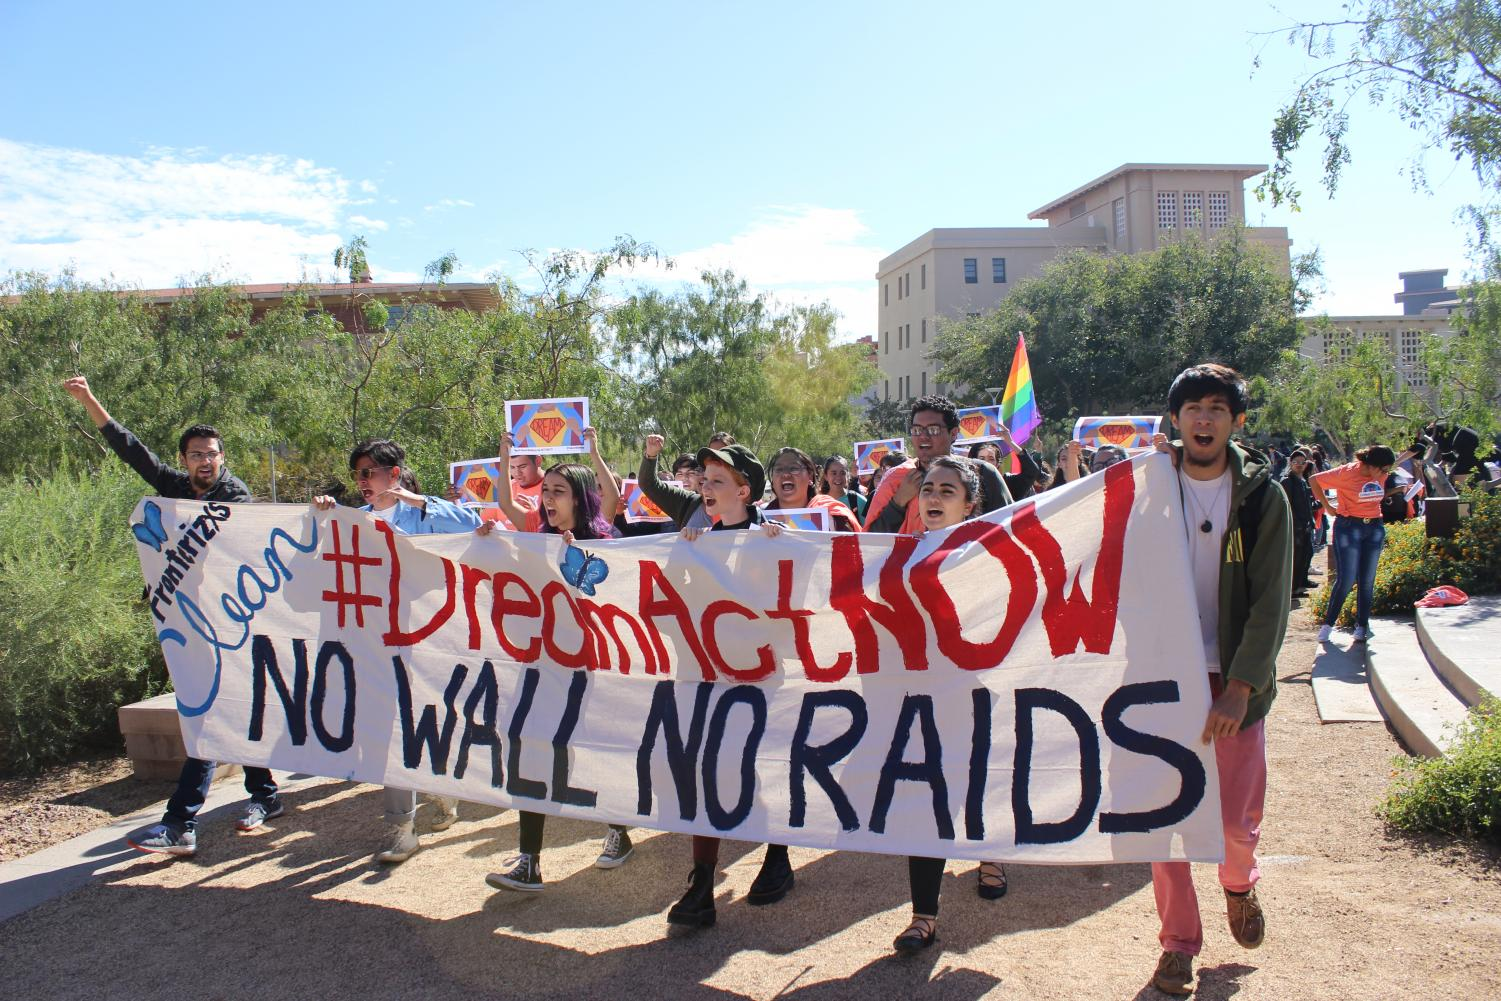 After+students+and+supporters+gathered%2C+they+marched+around+Centennial+Plaza.+